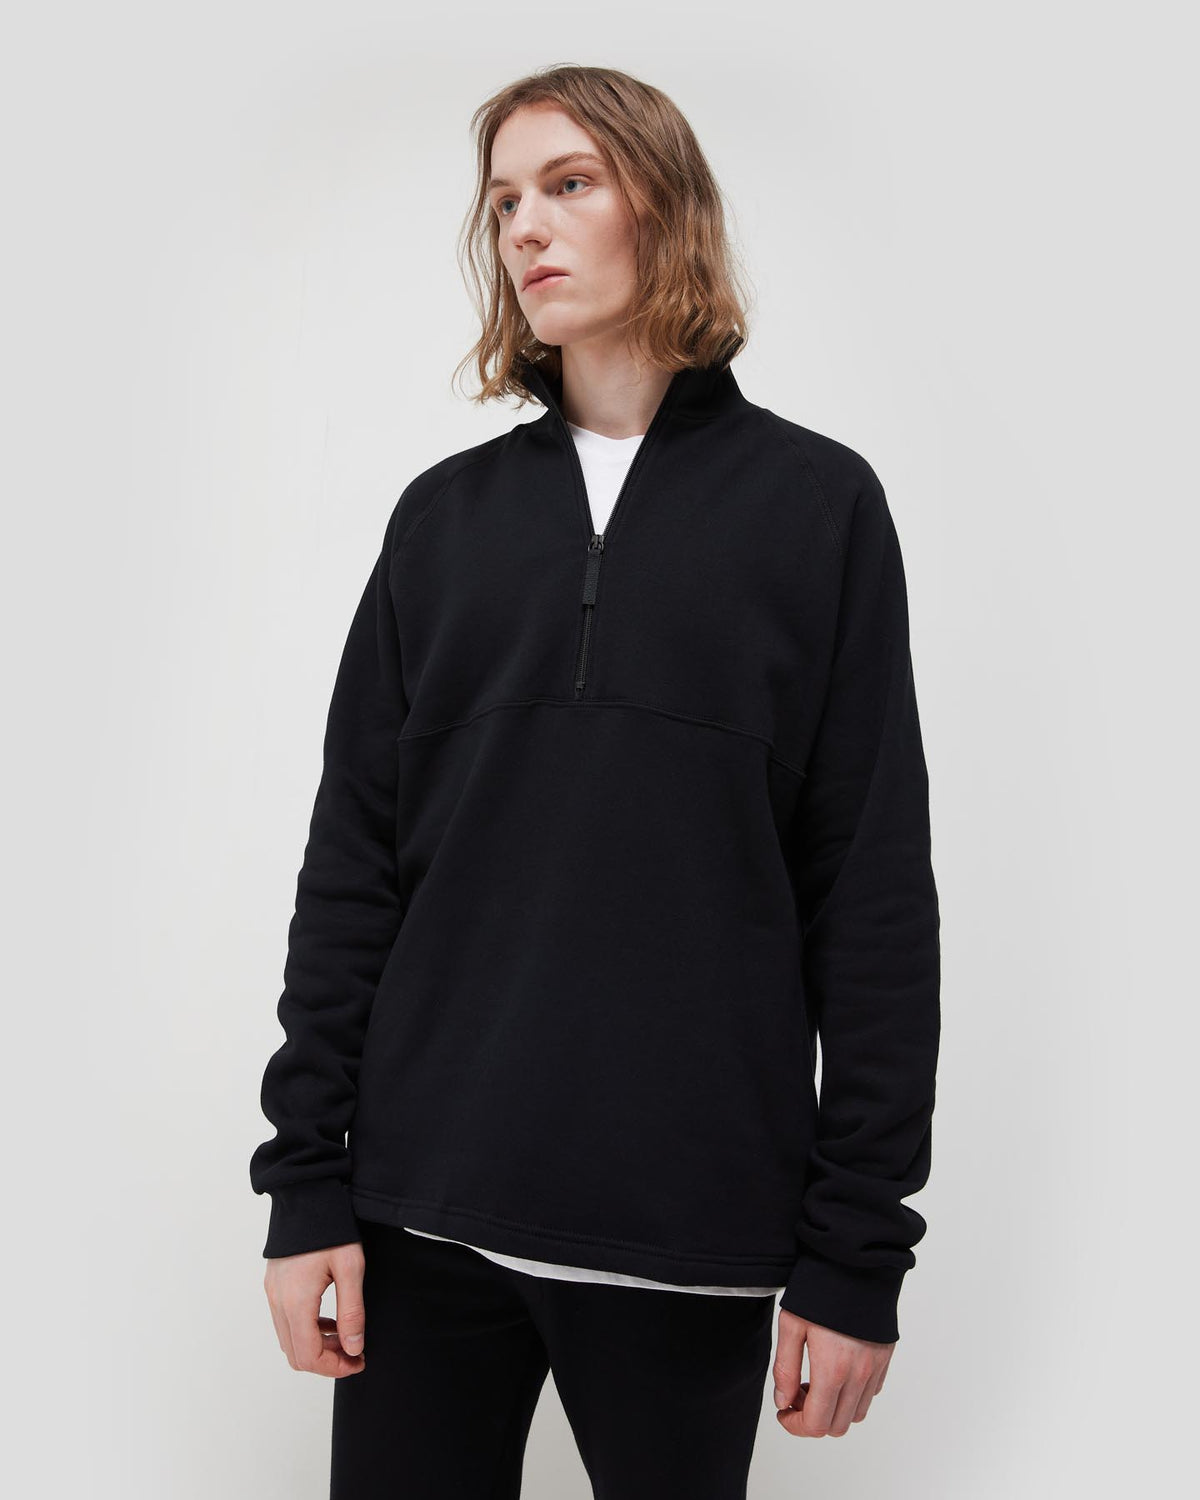 Arras Unisex Zip Sweatshirt